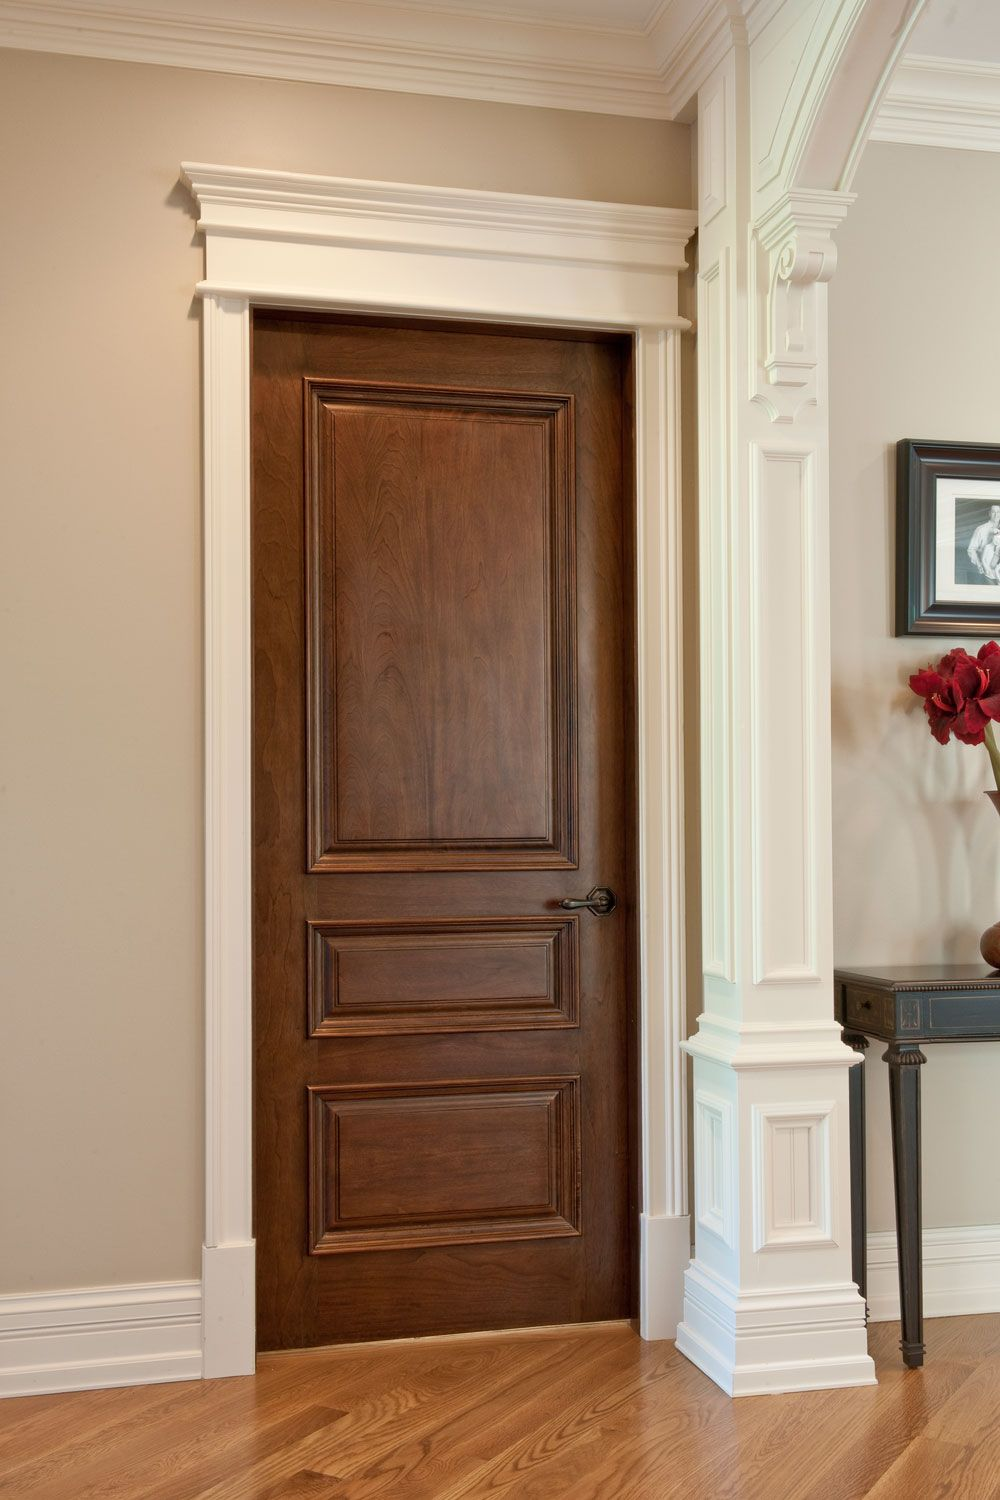 Decorate Bedroom With British Colonial Style Custom Interior Doors Traditional Interior Doors Solid Wood Interior Door